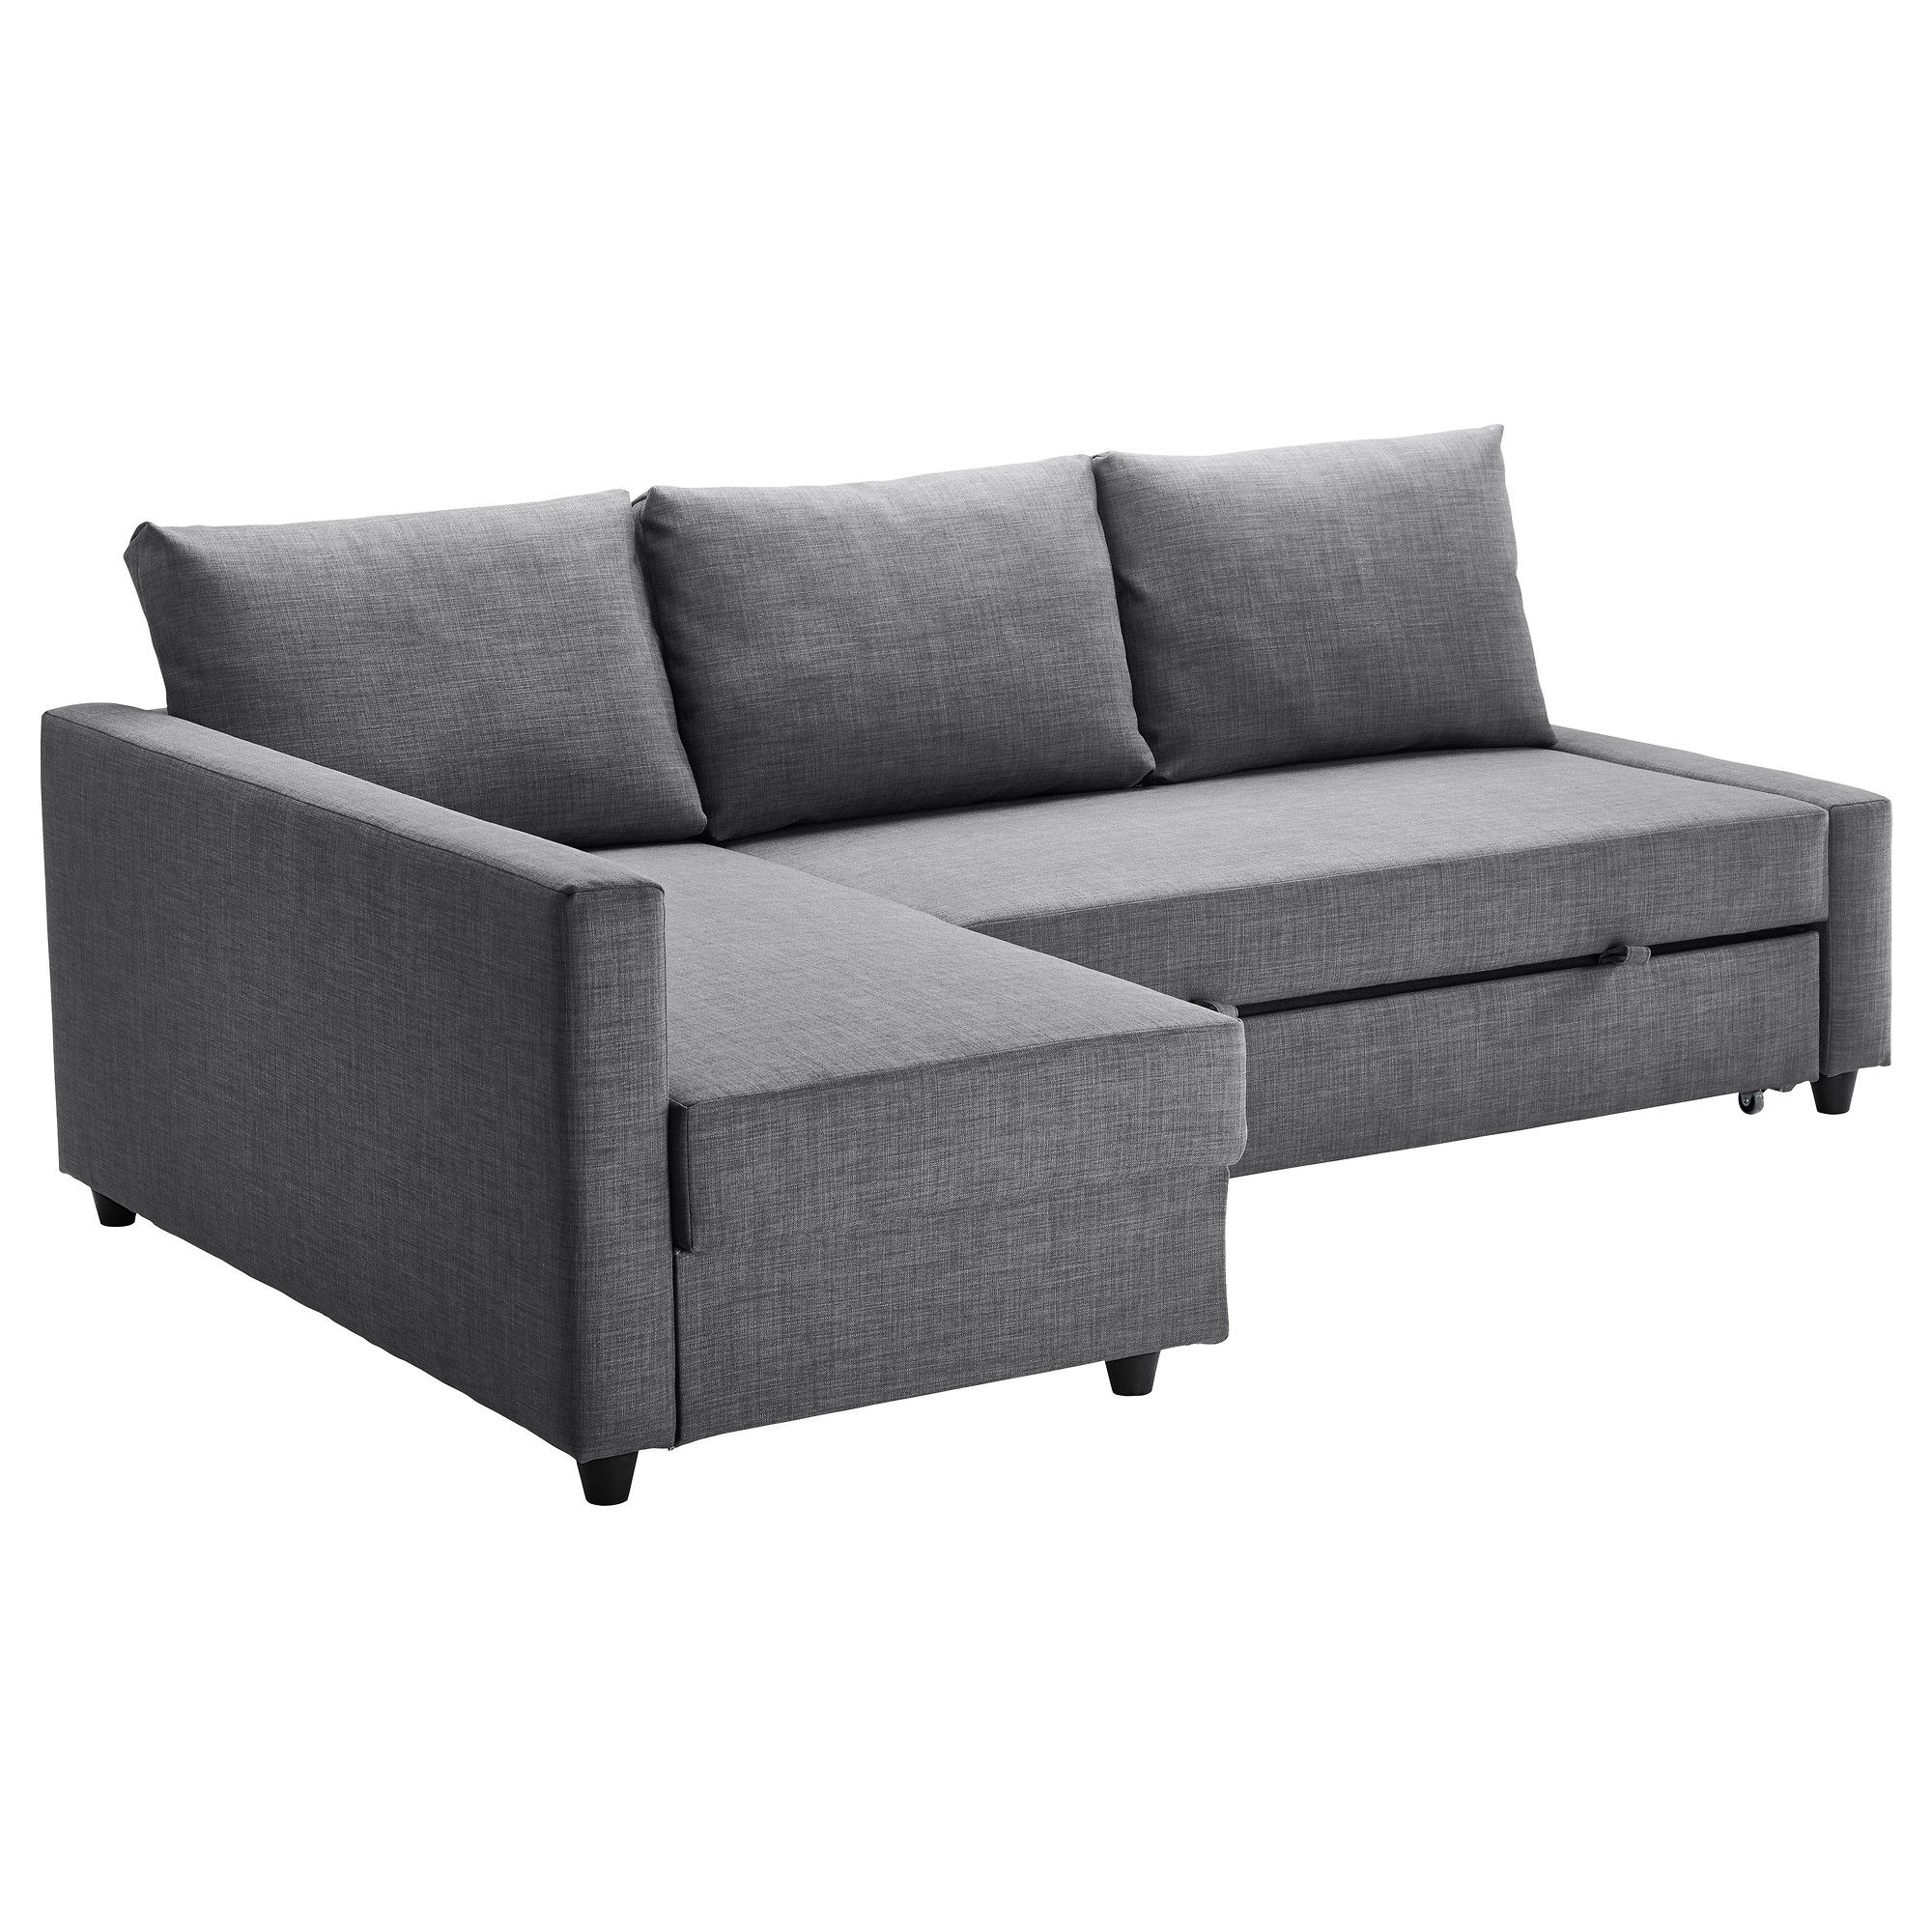 Preferred Sofabeds With Chaise Inside Ikea – Friheten, Sofa Bed With Chaise, Skiftebo Dark Gray, , , You (View 7 of 15)